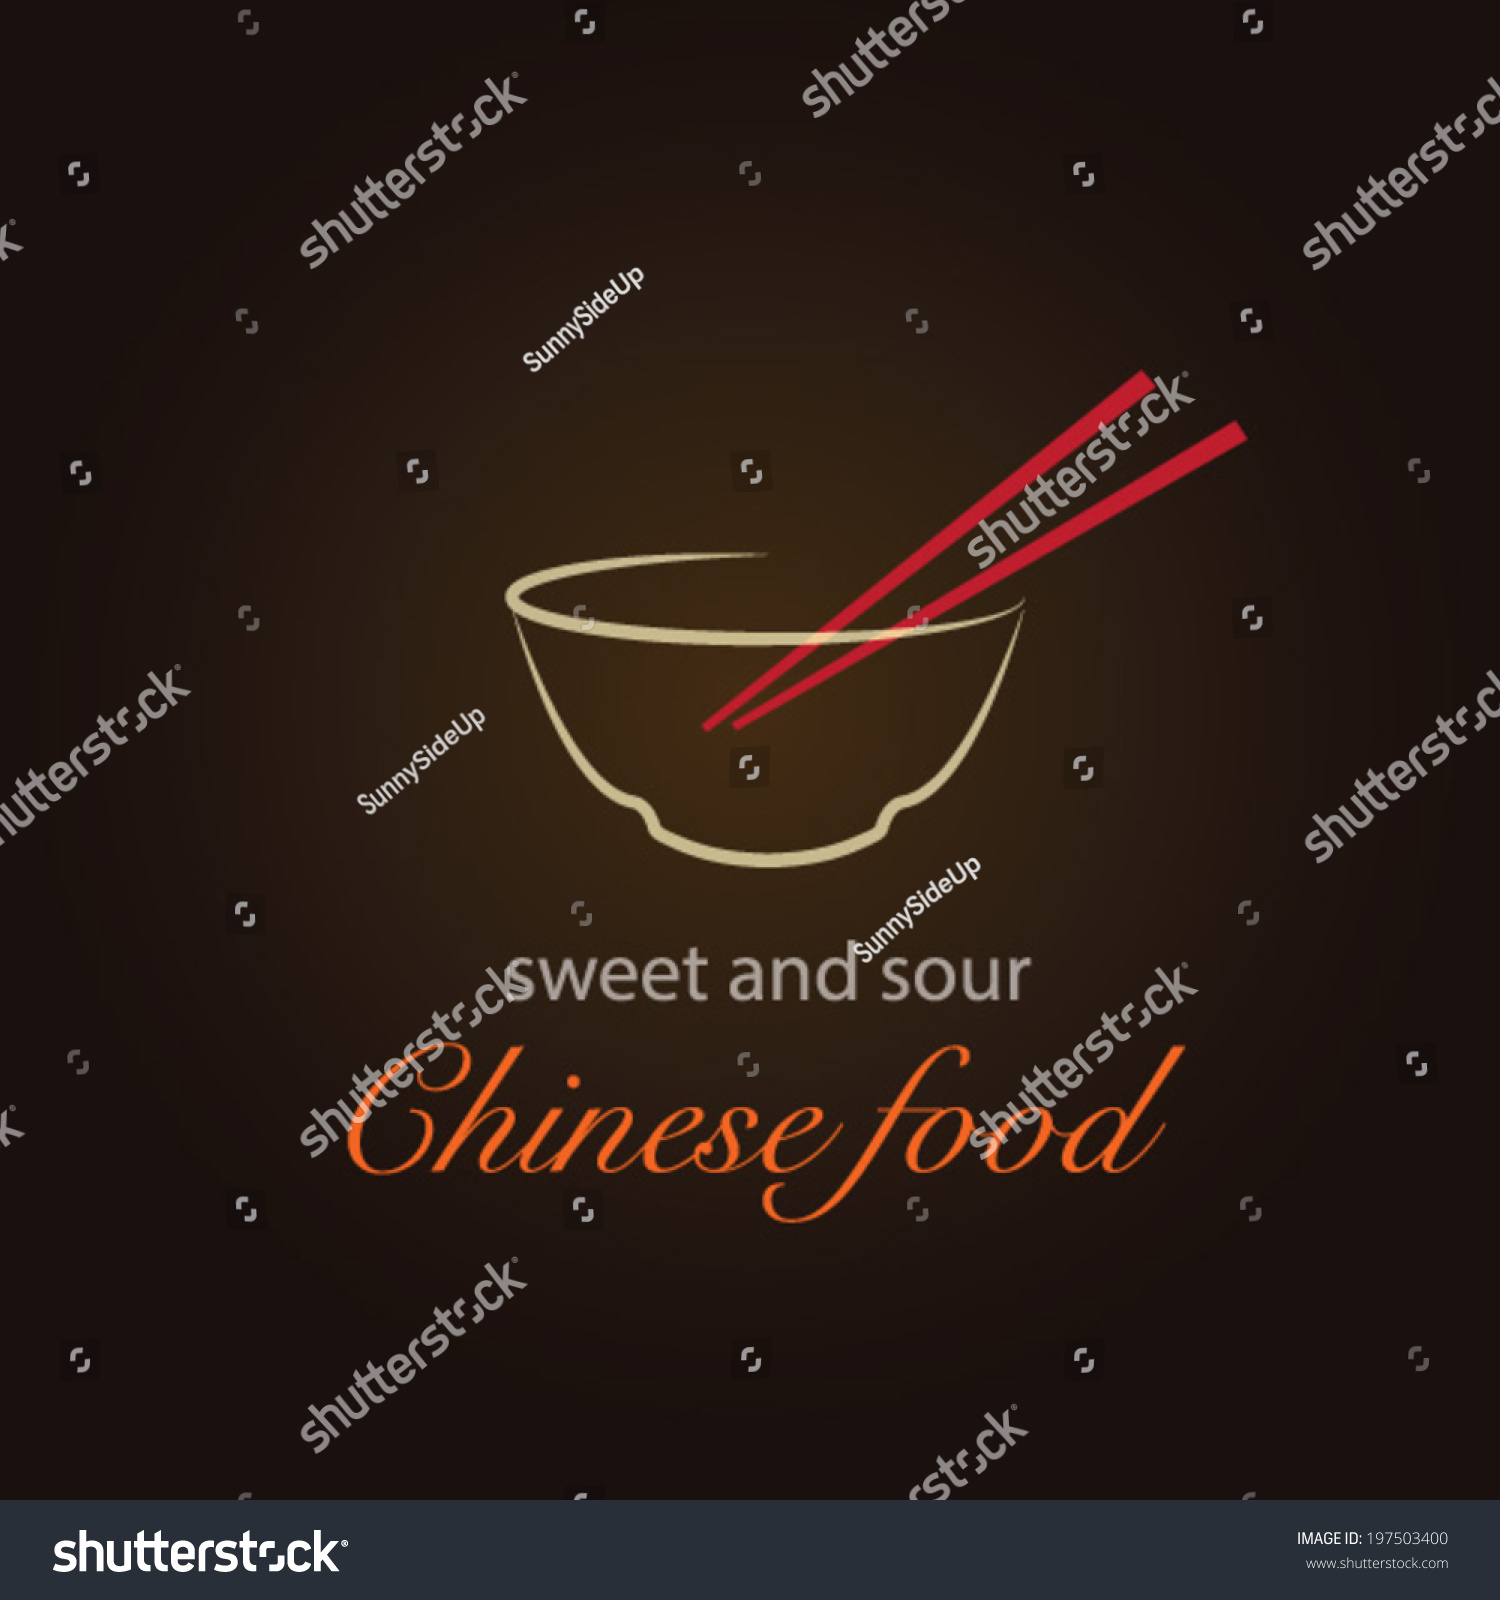 how to eat chinese food with chopsticks